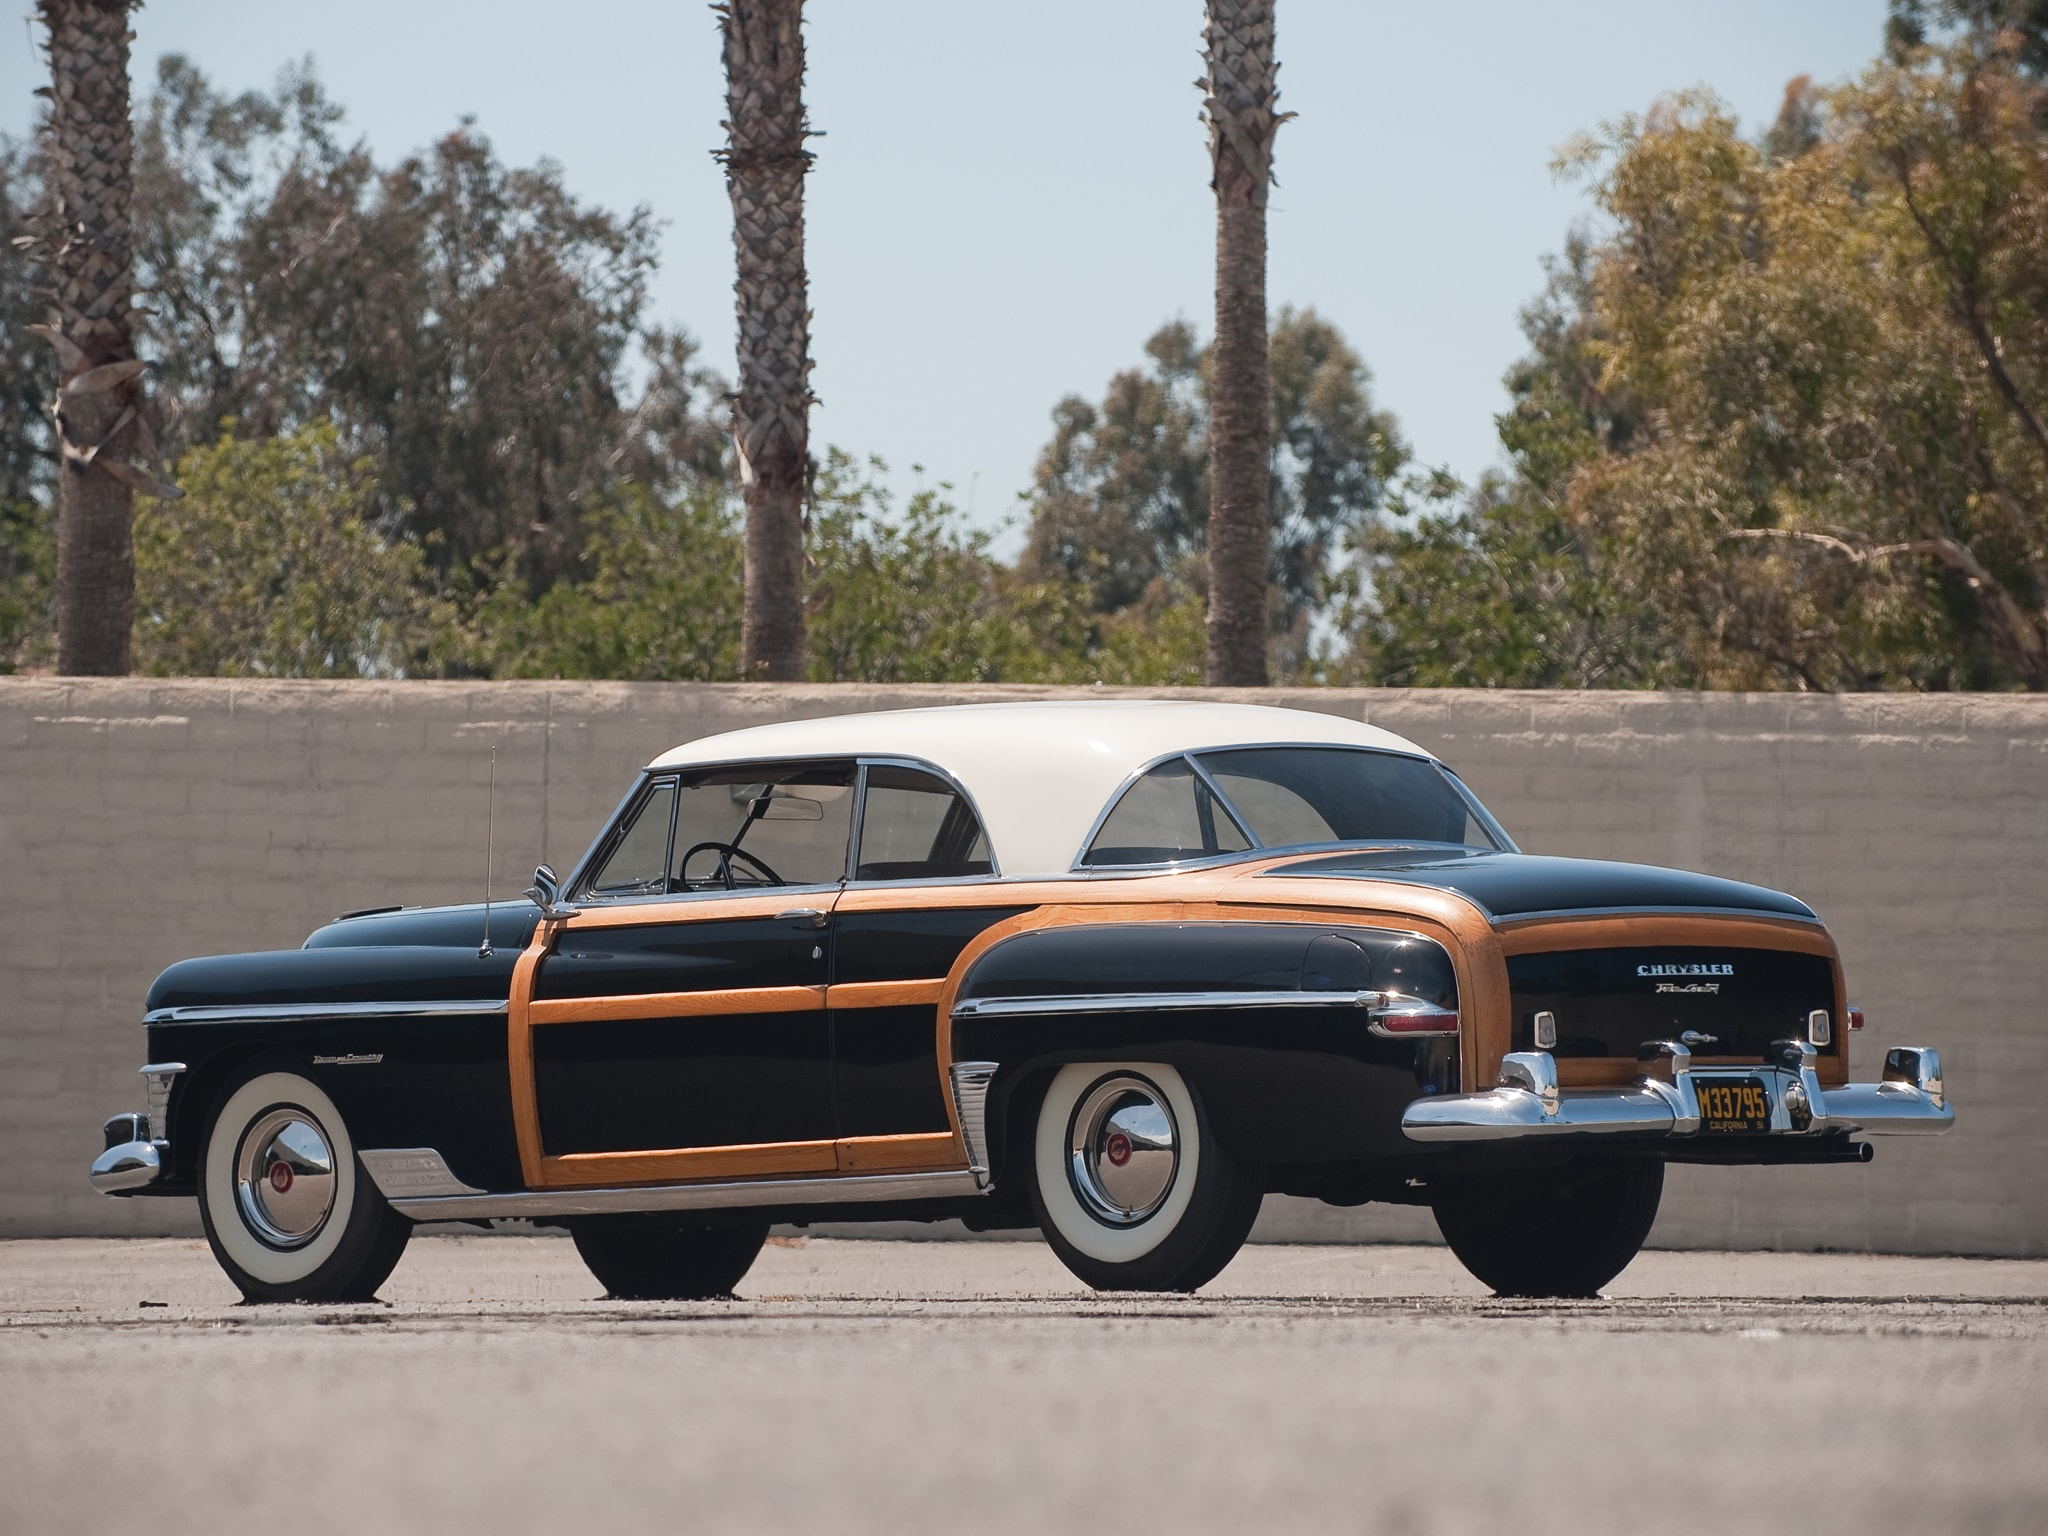 1950 Chrysler Town & Country widescreen wallpapers